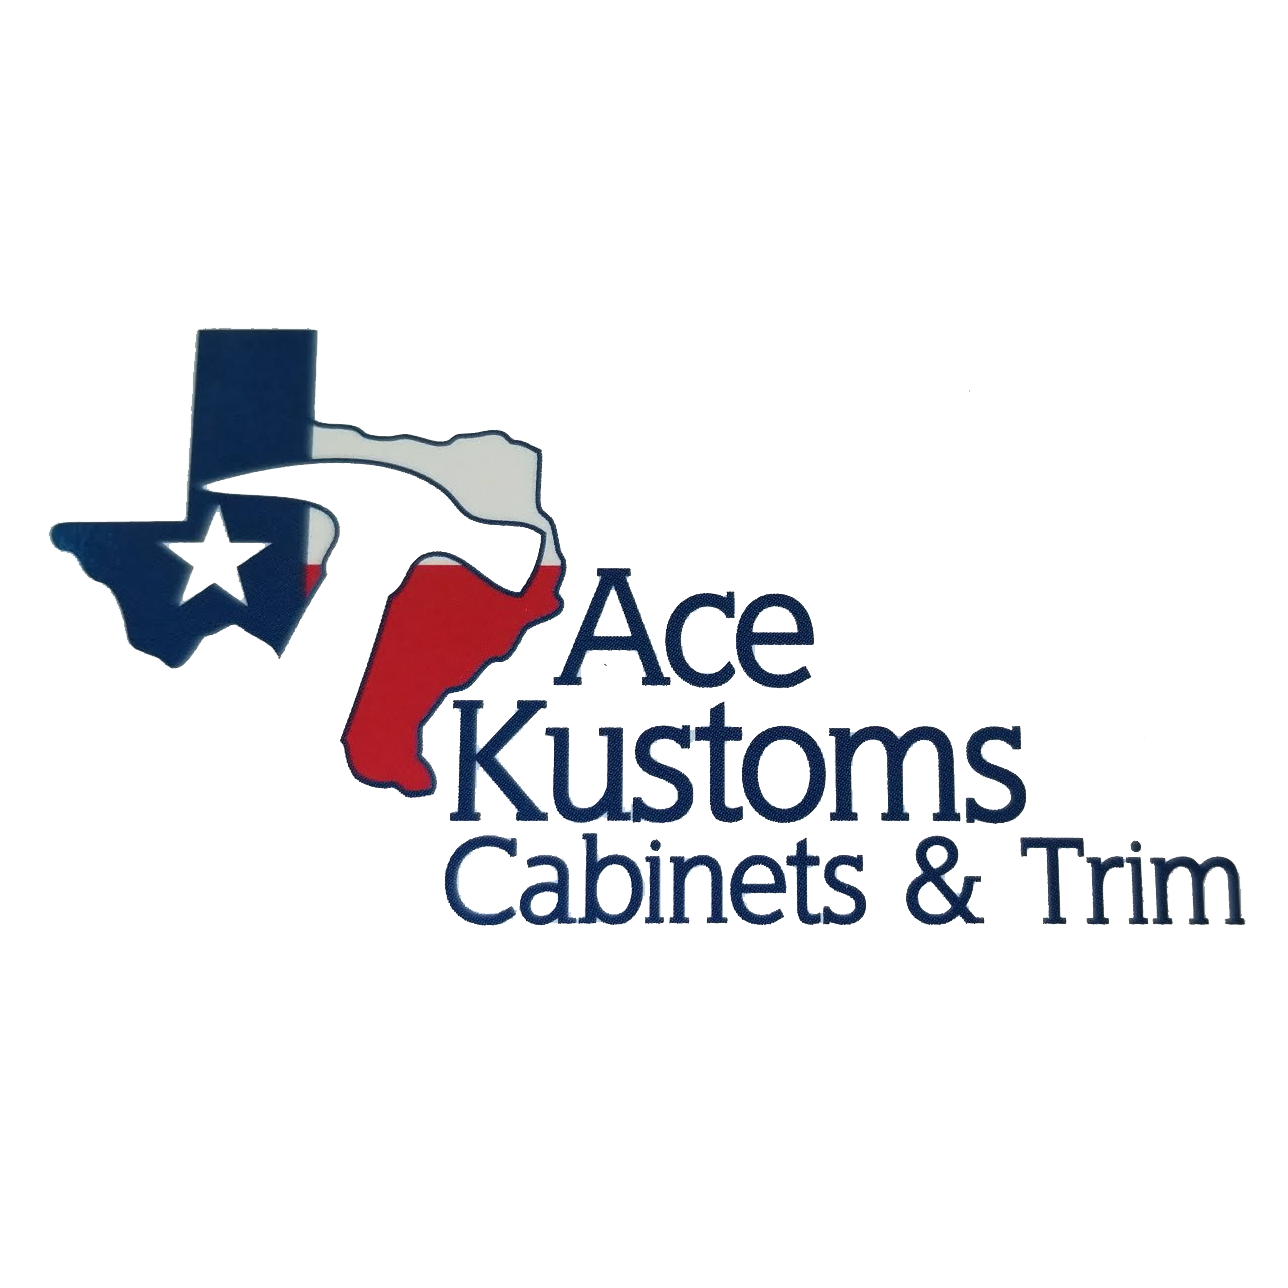 Ace Kustoms Cabinets and Trim